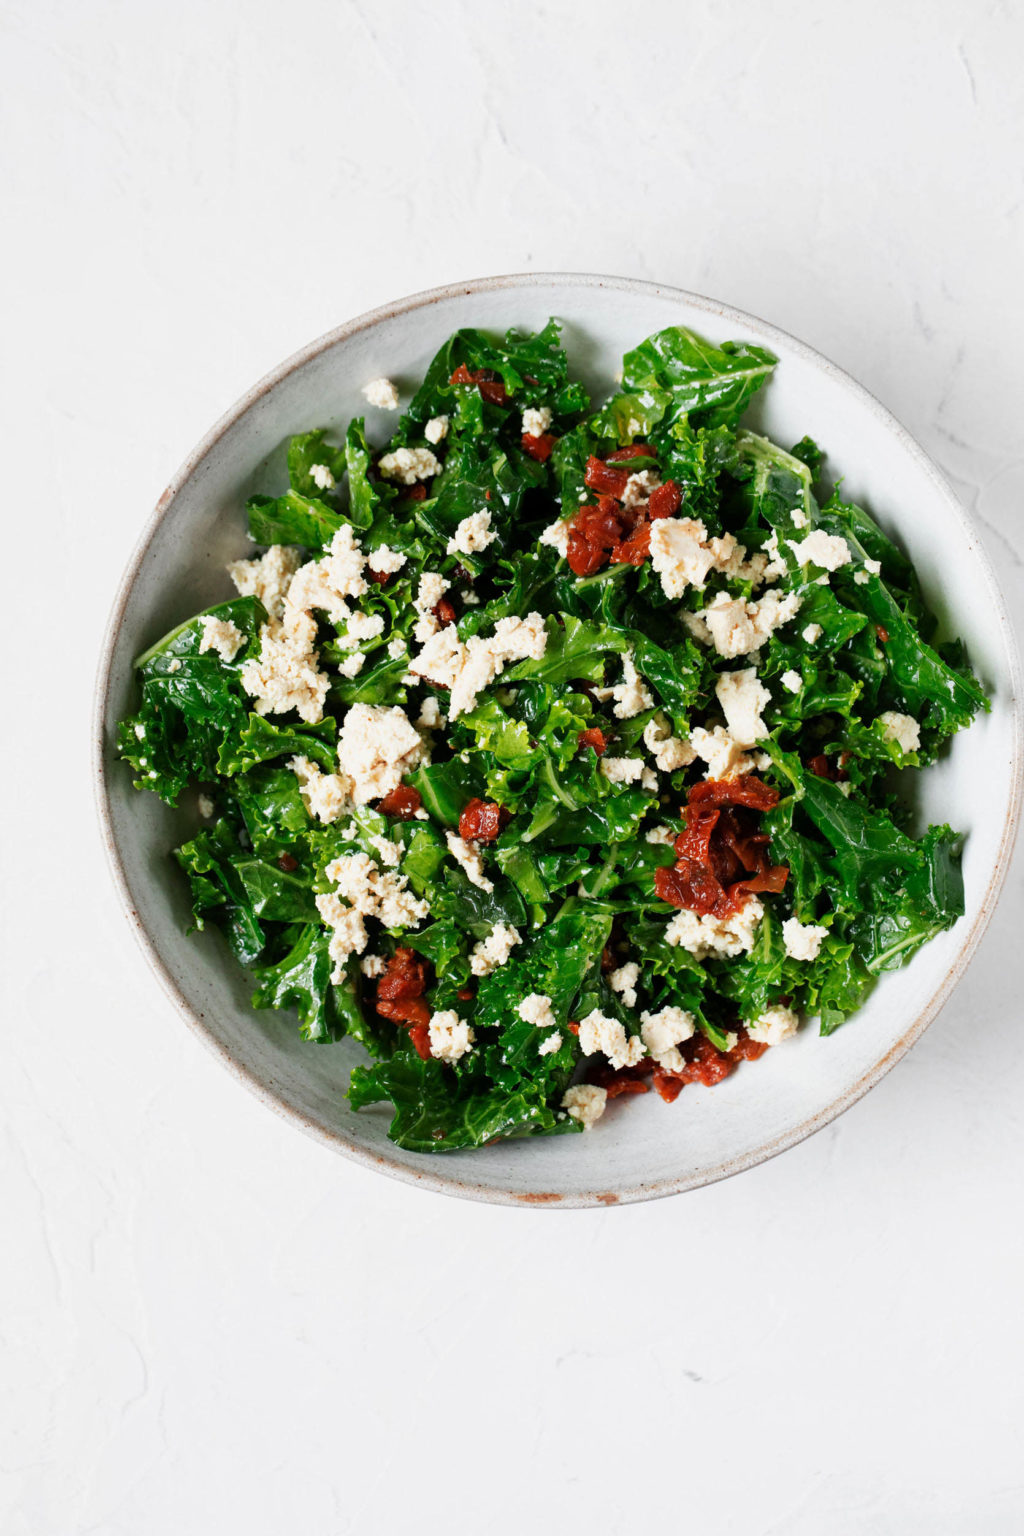 An overhead image of a kale-based, summery salad with added tofu. The salad is in a white serving bowl.